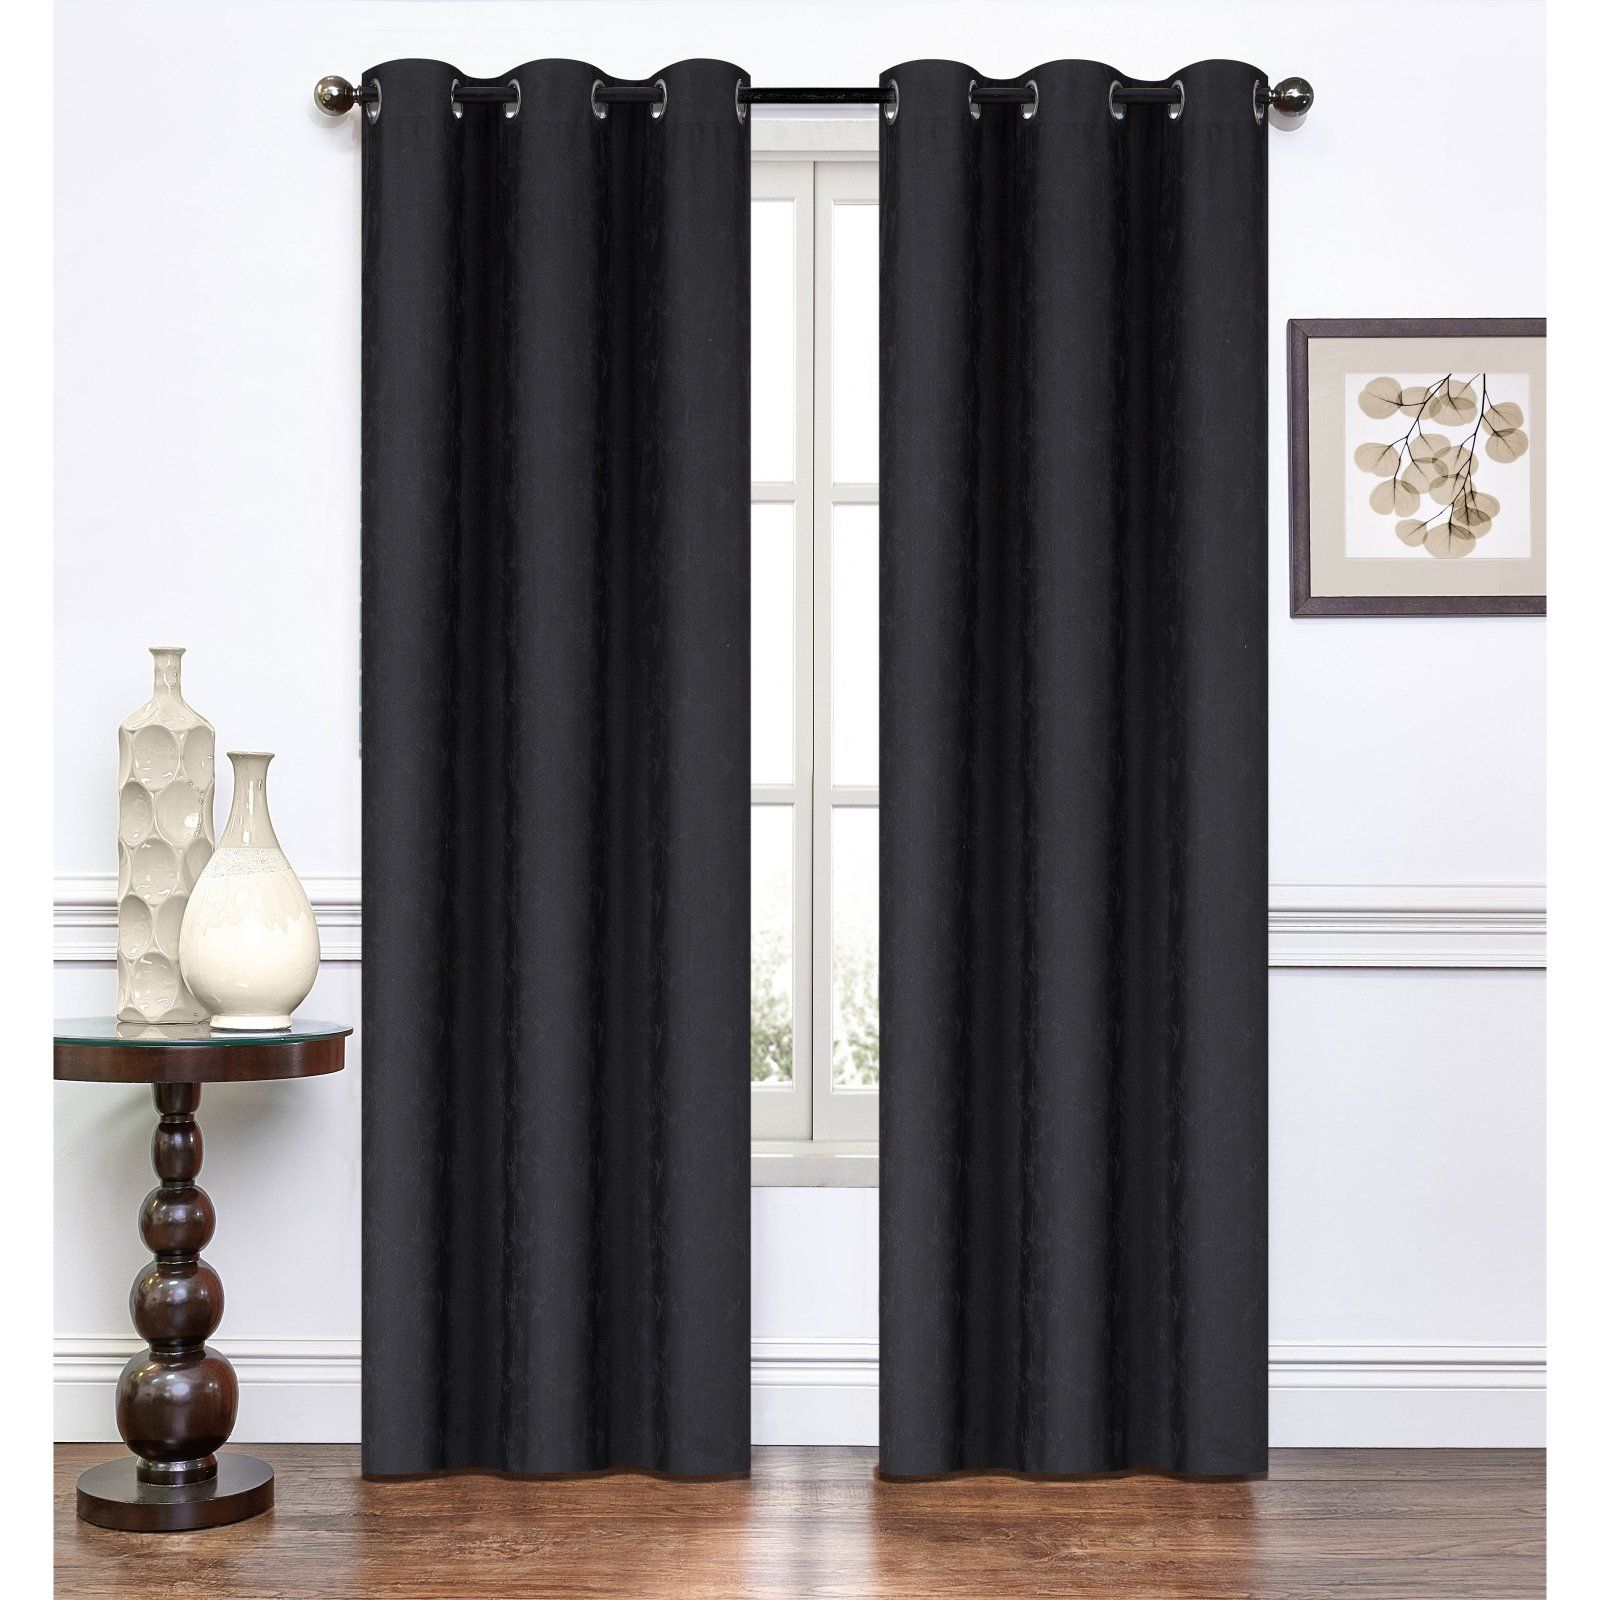 Rt Designers Collection Paradise Jacquard Curtain Panel Pair Black